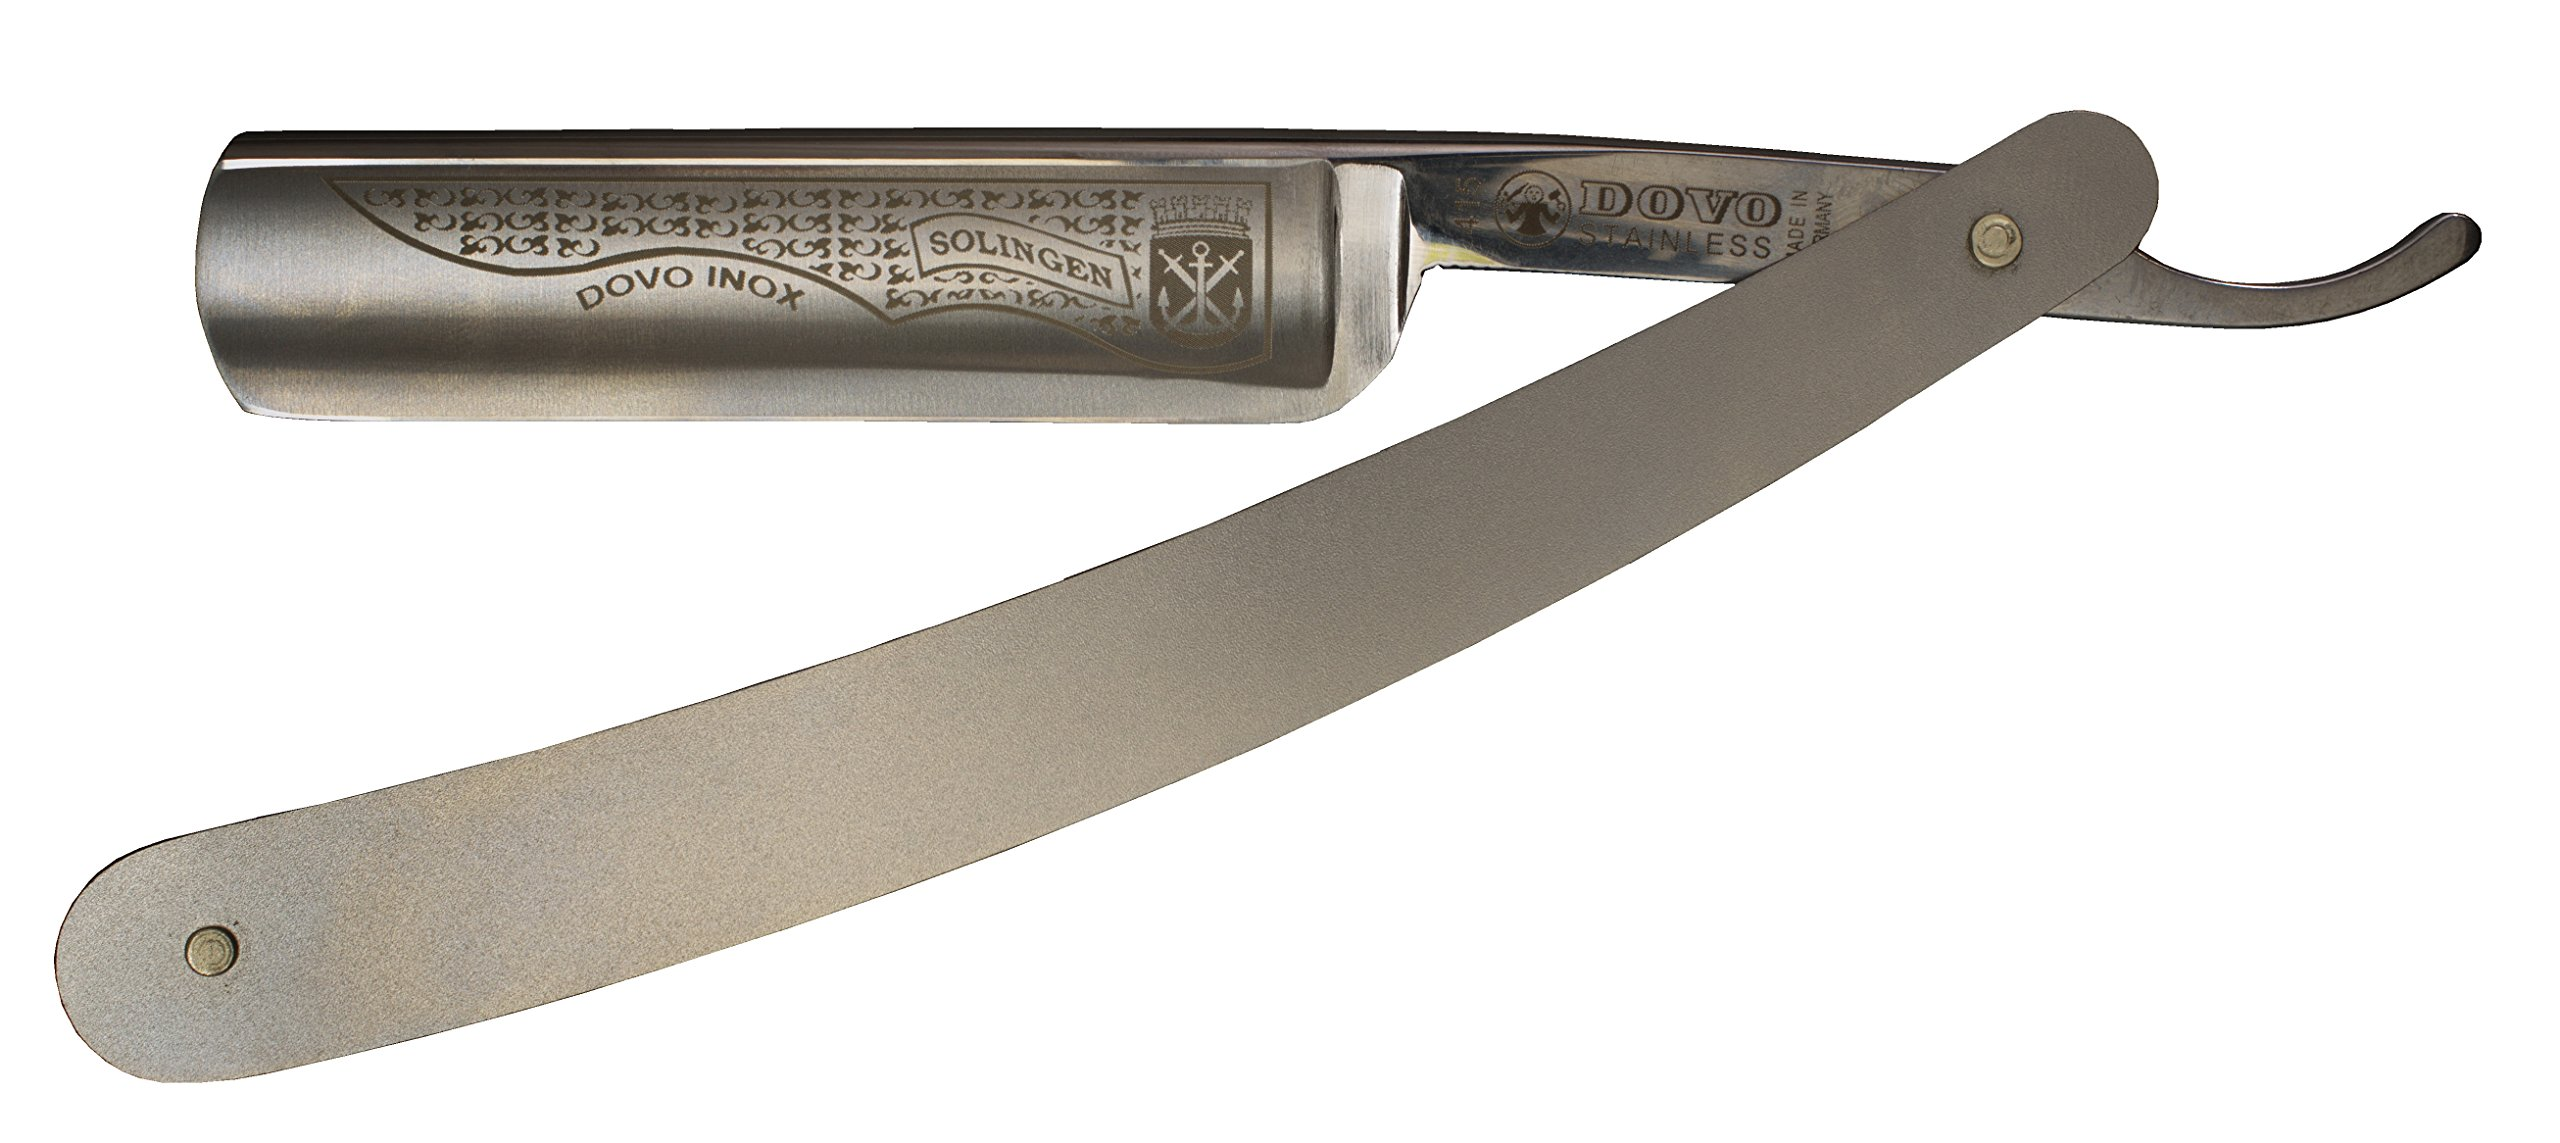 Dovo 4155846 5/8'' INOX Stainless Steel Straight Razor with Shave Ready Option (Shave Ready, Unsealed)